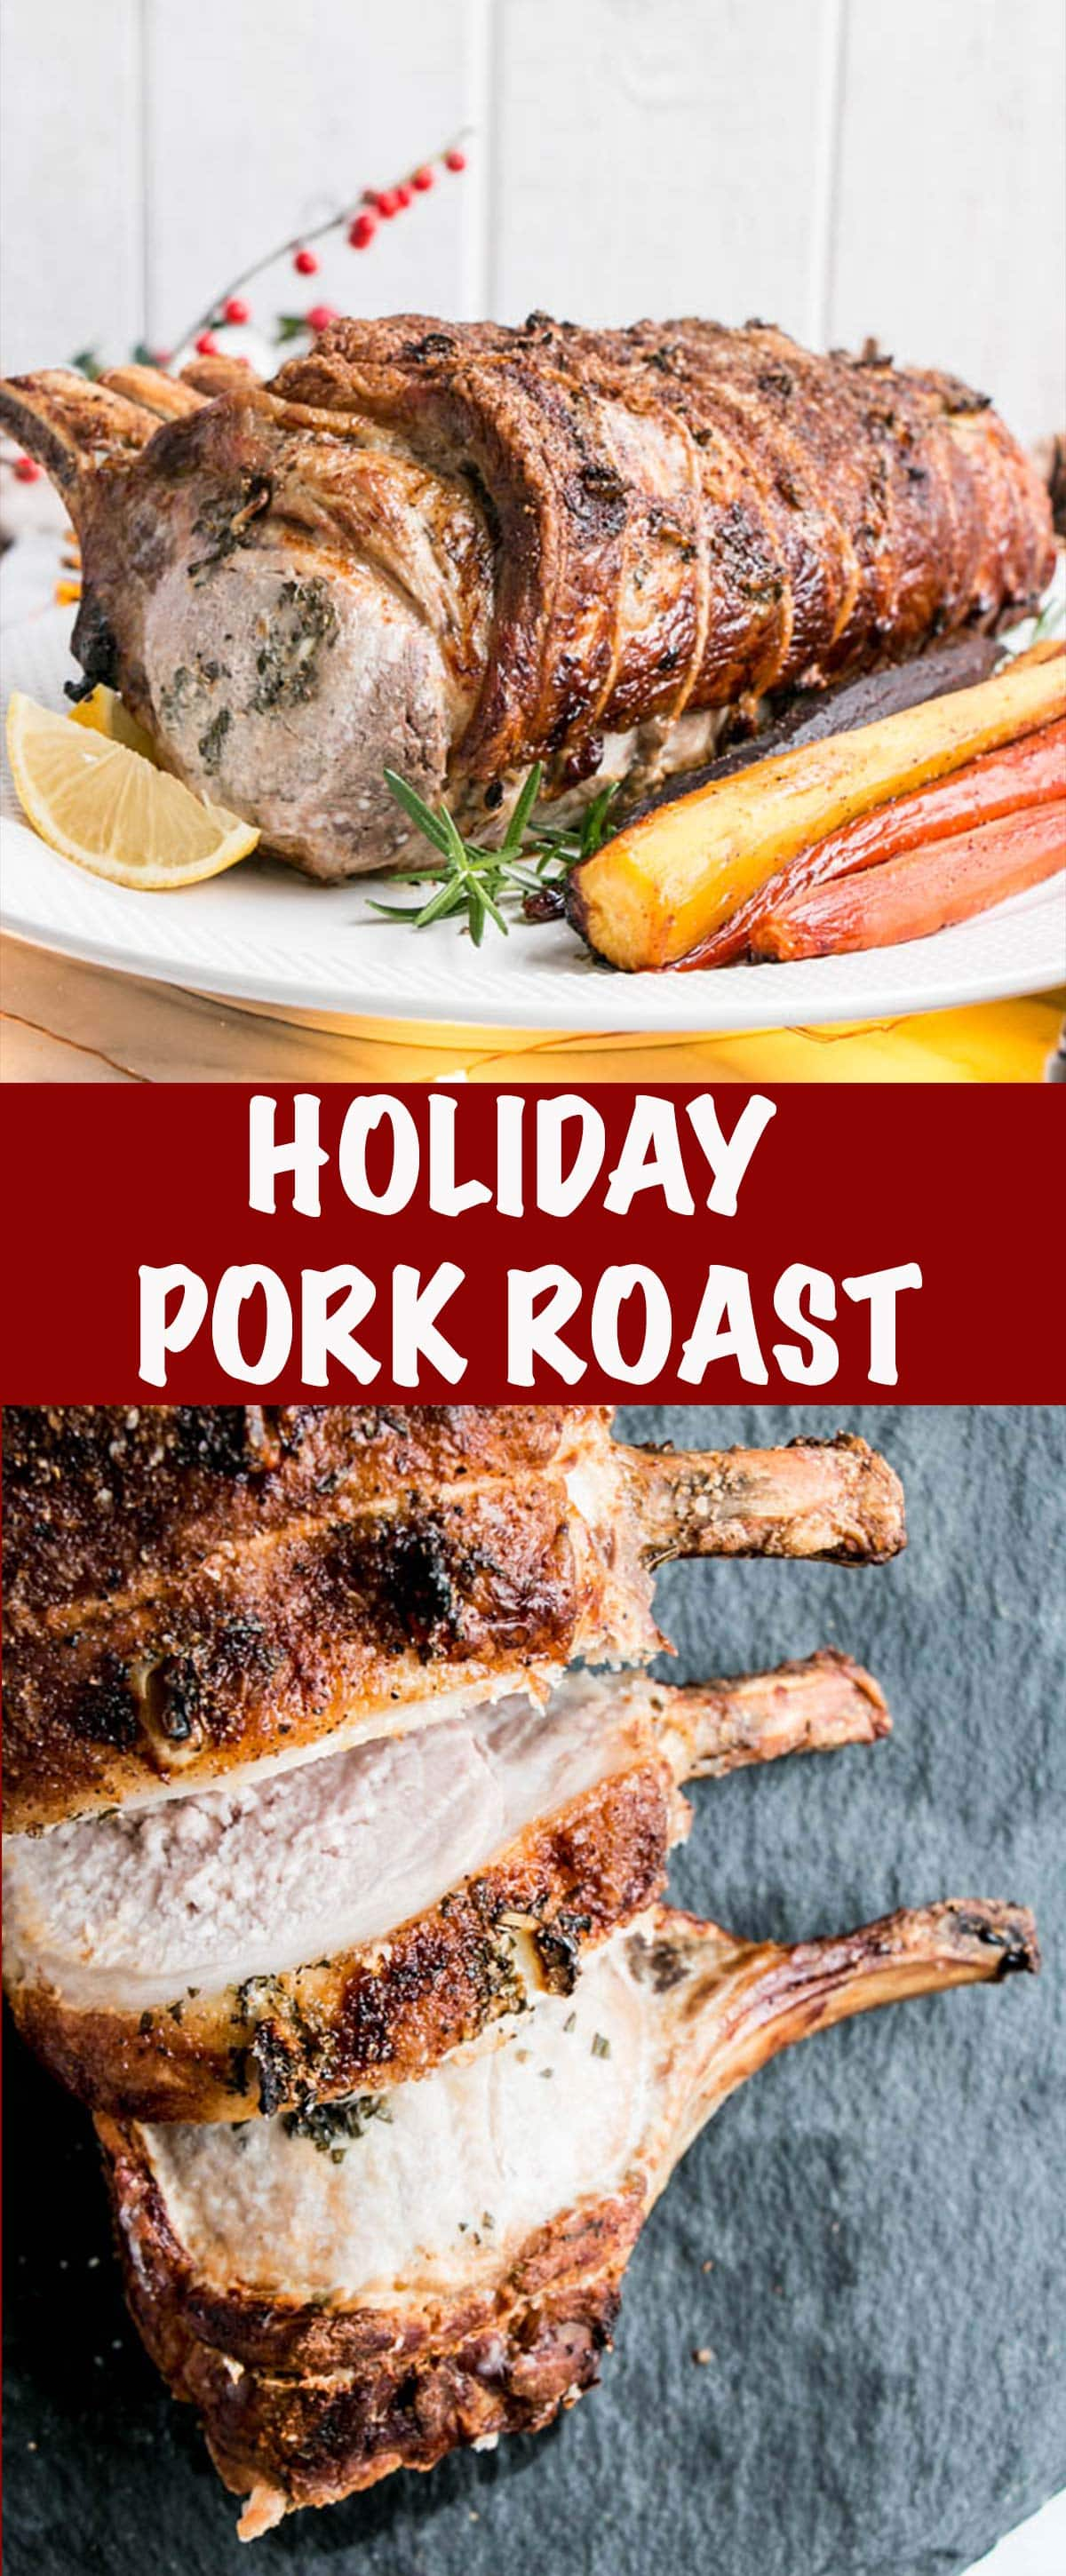 Holiday Pork Roast - Long Pin